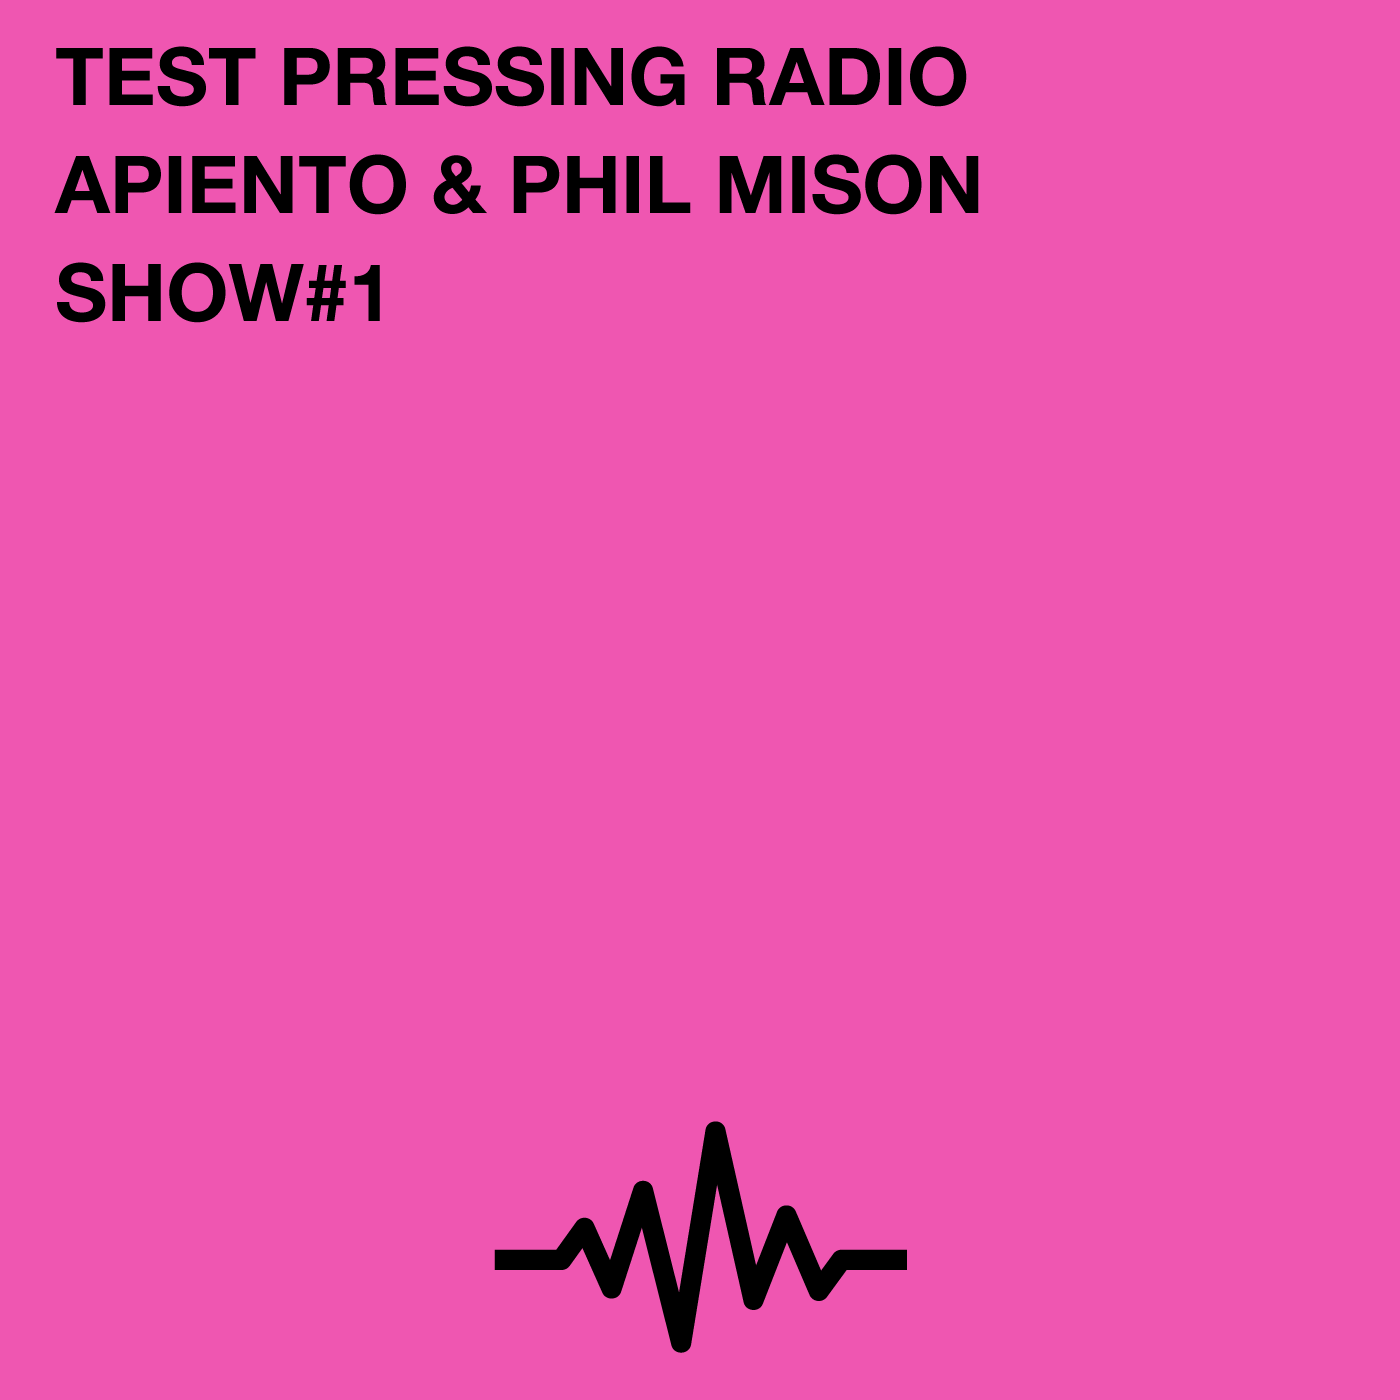 Test Pressing, radio, Phil Mison, Apiento